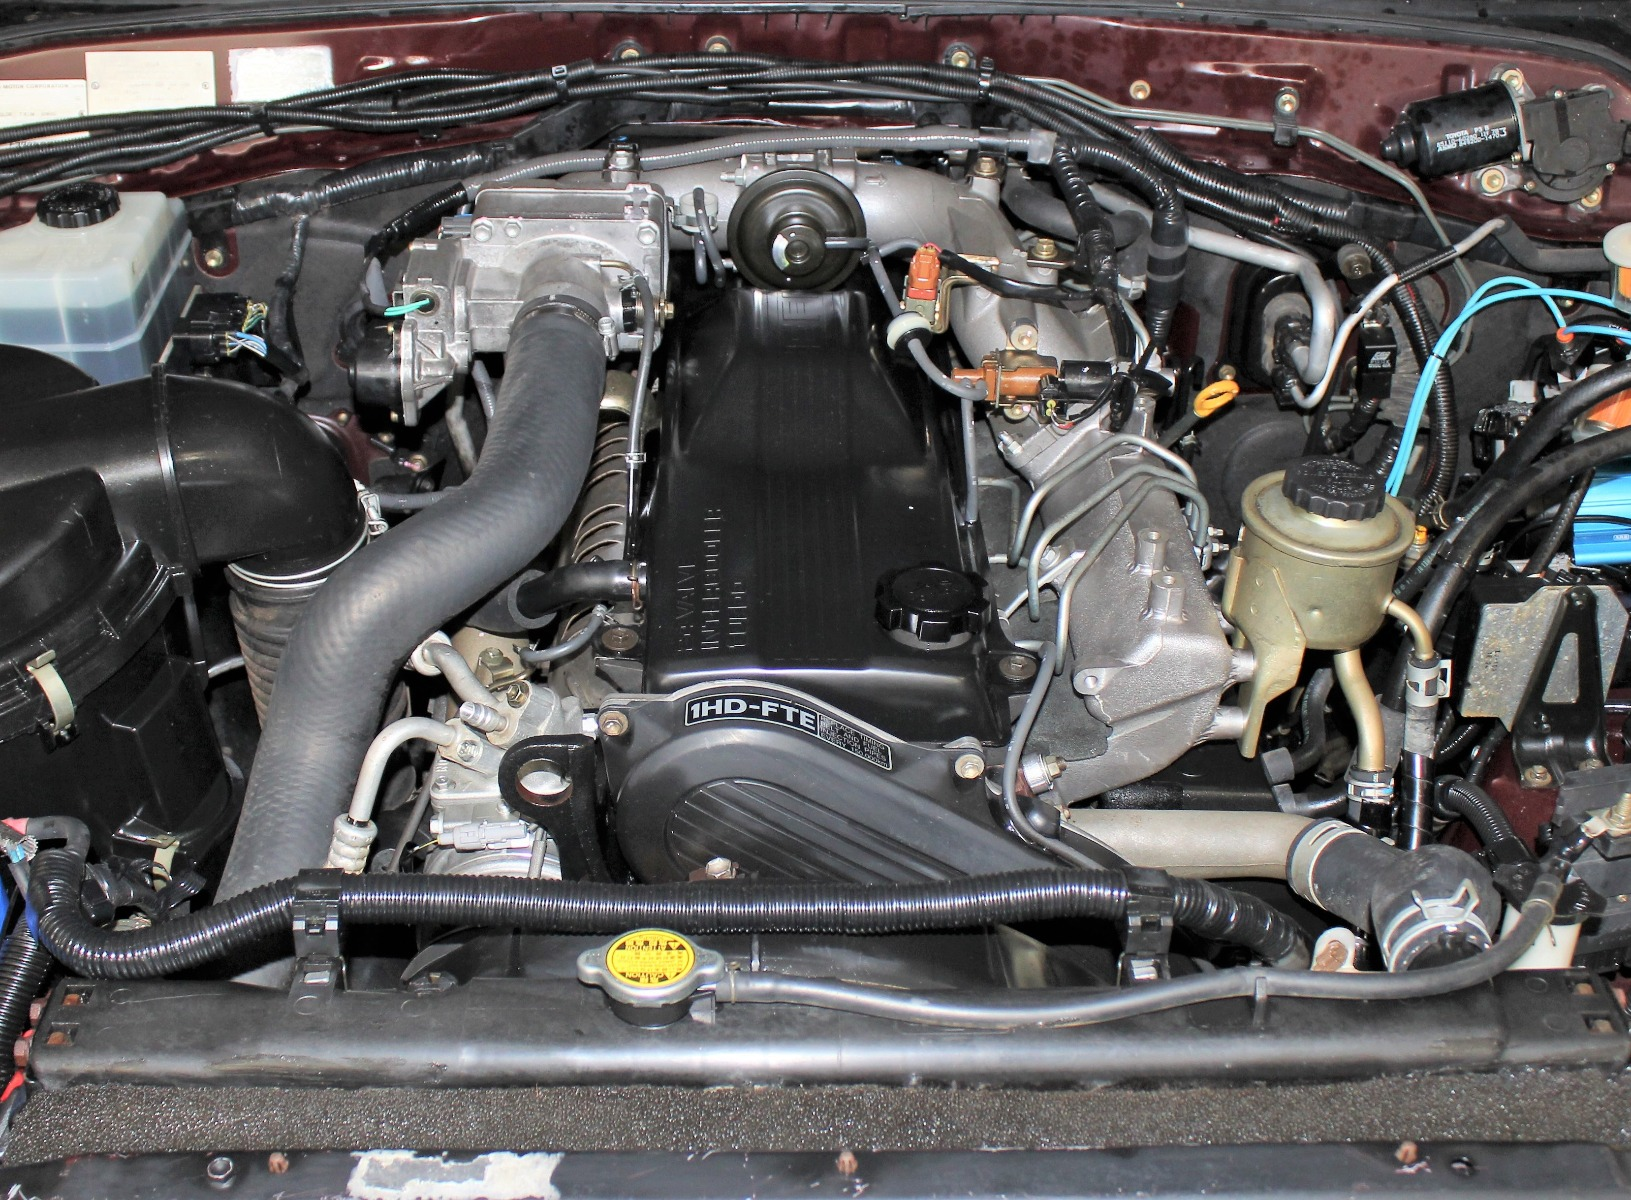 A Landcruiser engine bay fitted with a 1HD-FTE Engine